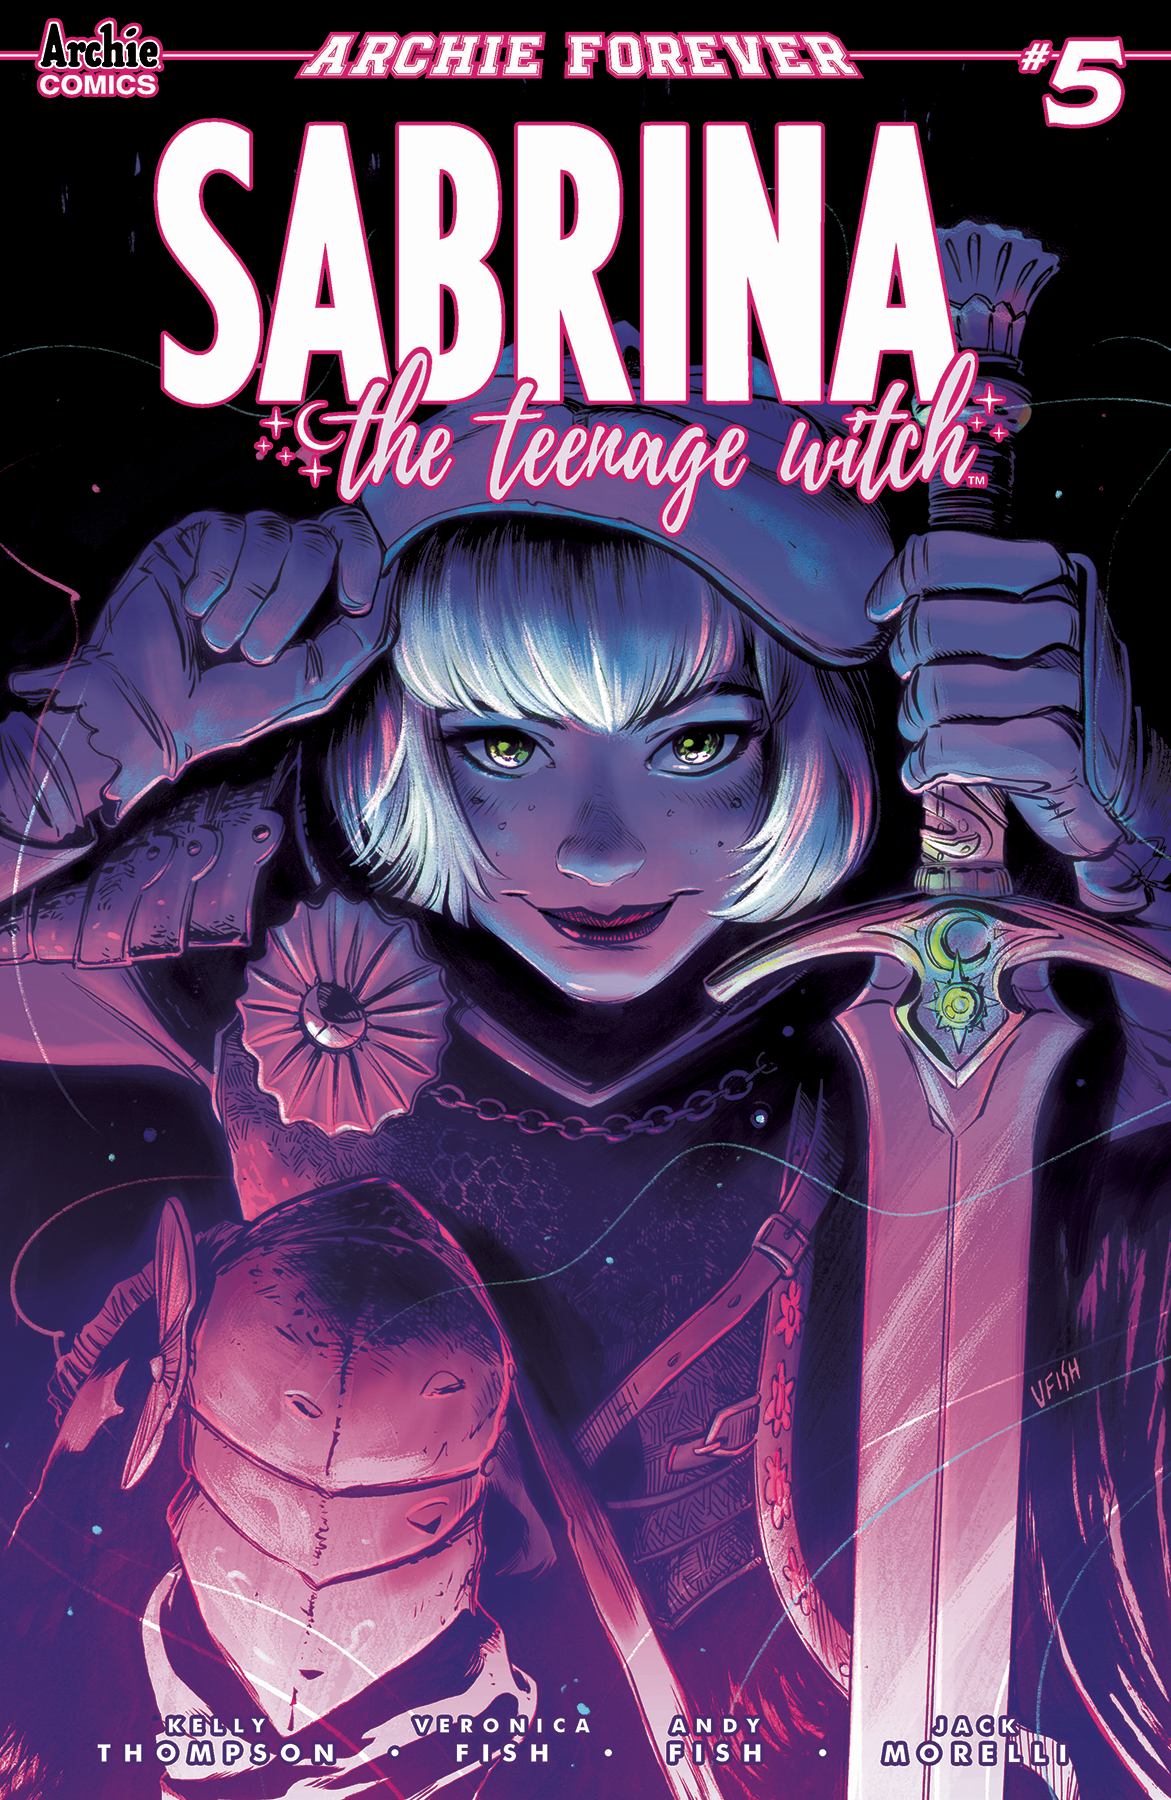 SABRINA TEENAGE WITCH #5 (OF 5) CVR A FISH